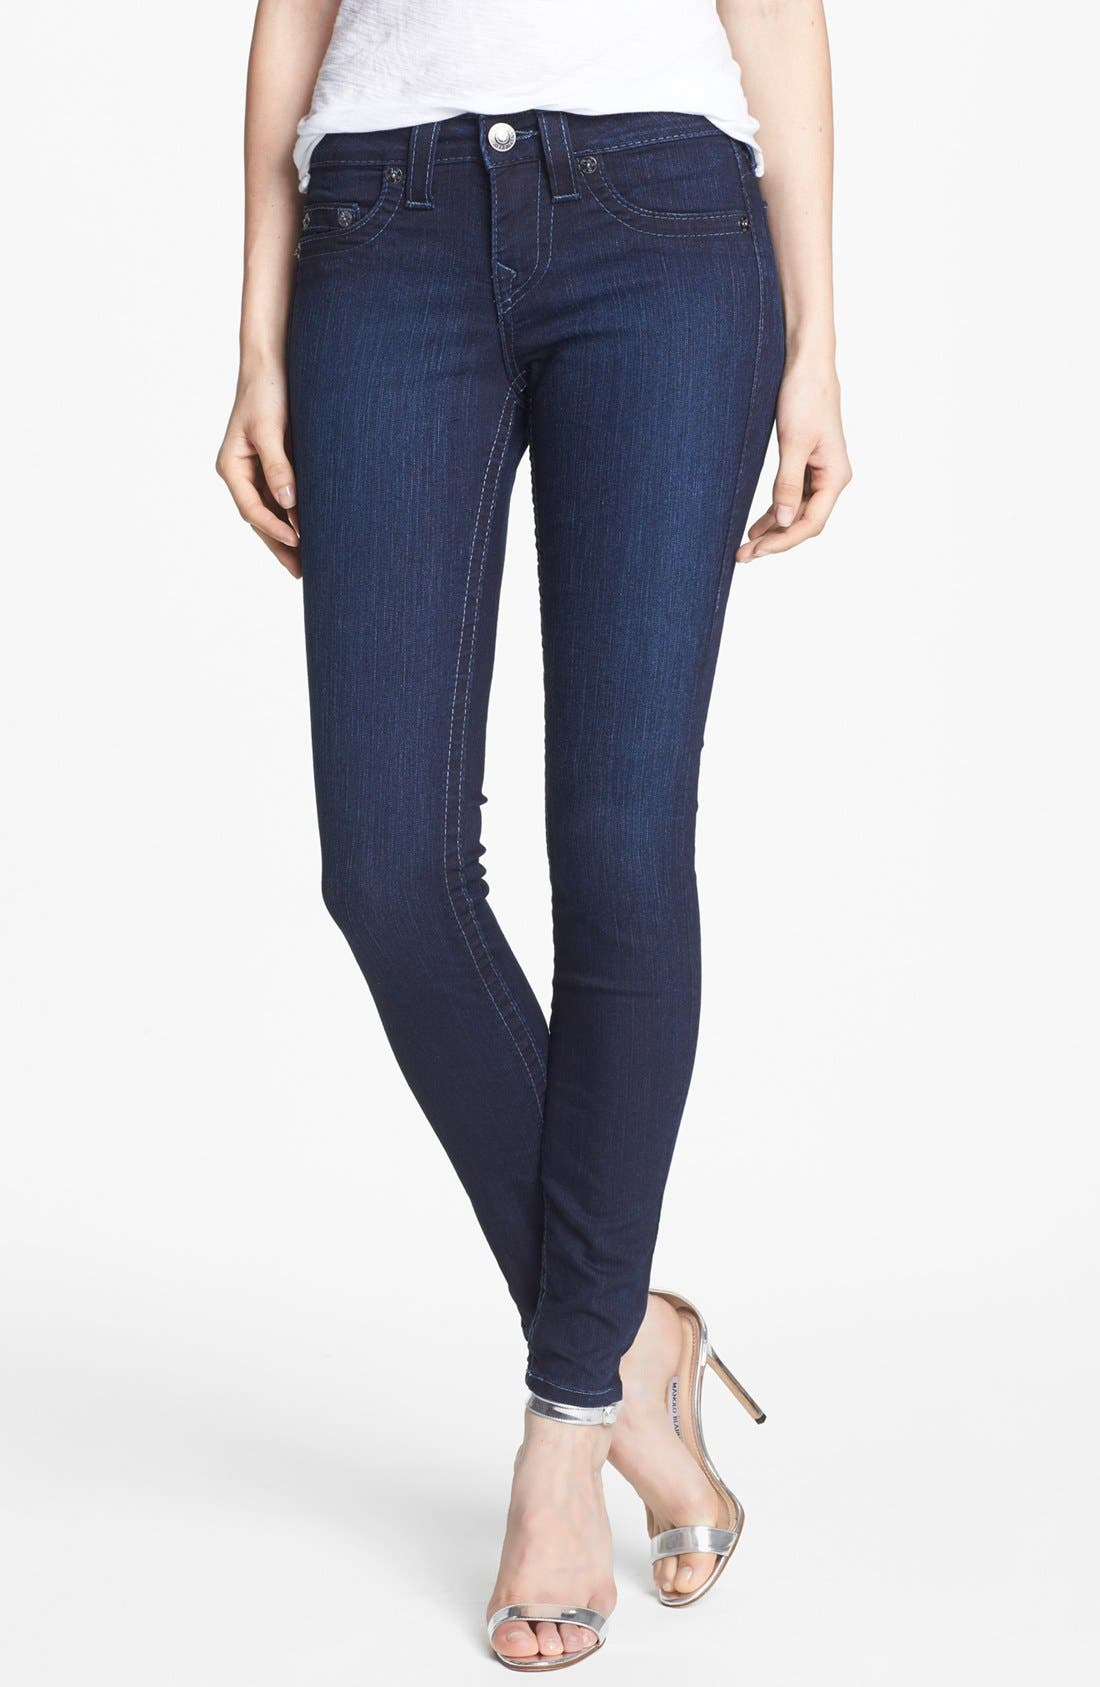 Alternate Image 1 Selected - True Religion Brand Jeans 'Halle' Mid Rise Skinny Jeans (Starlight)